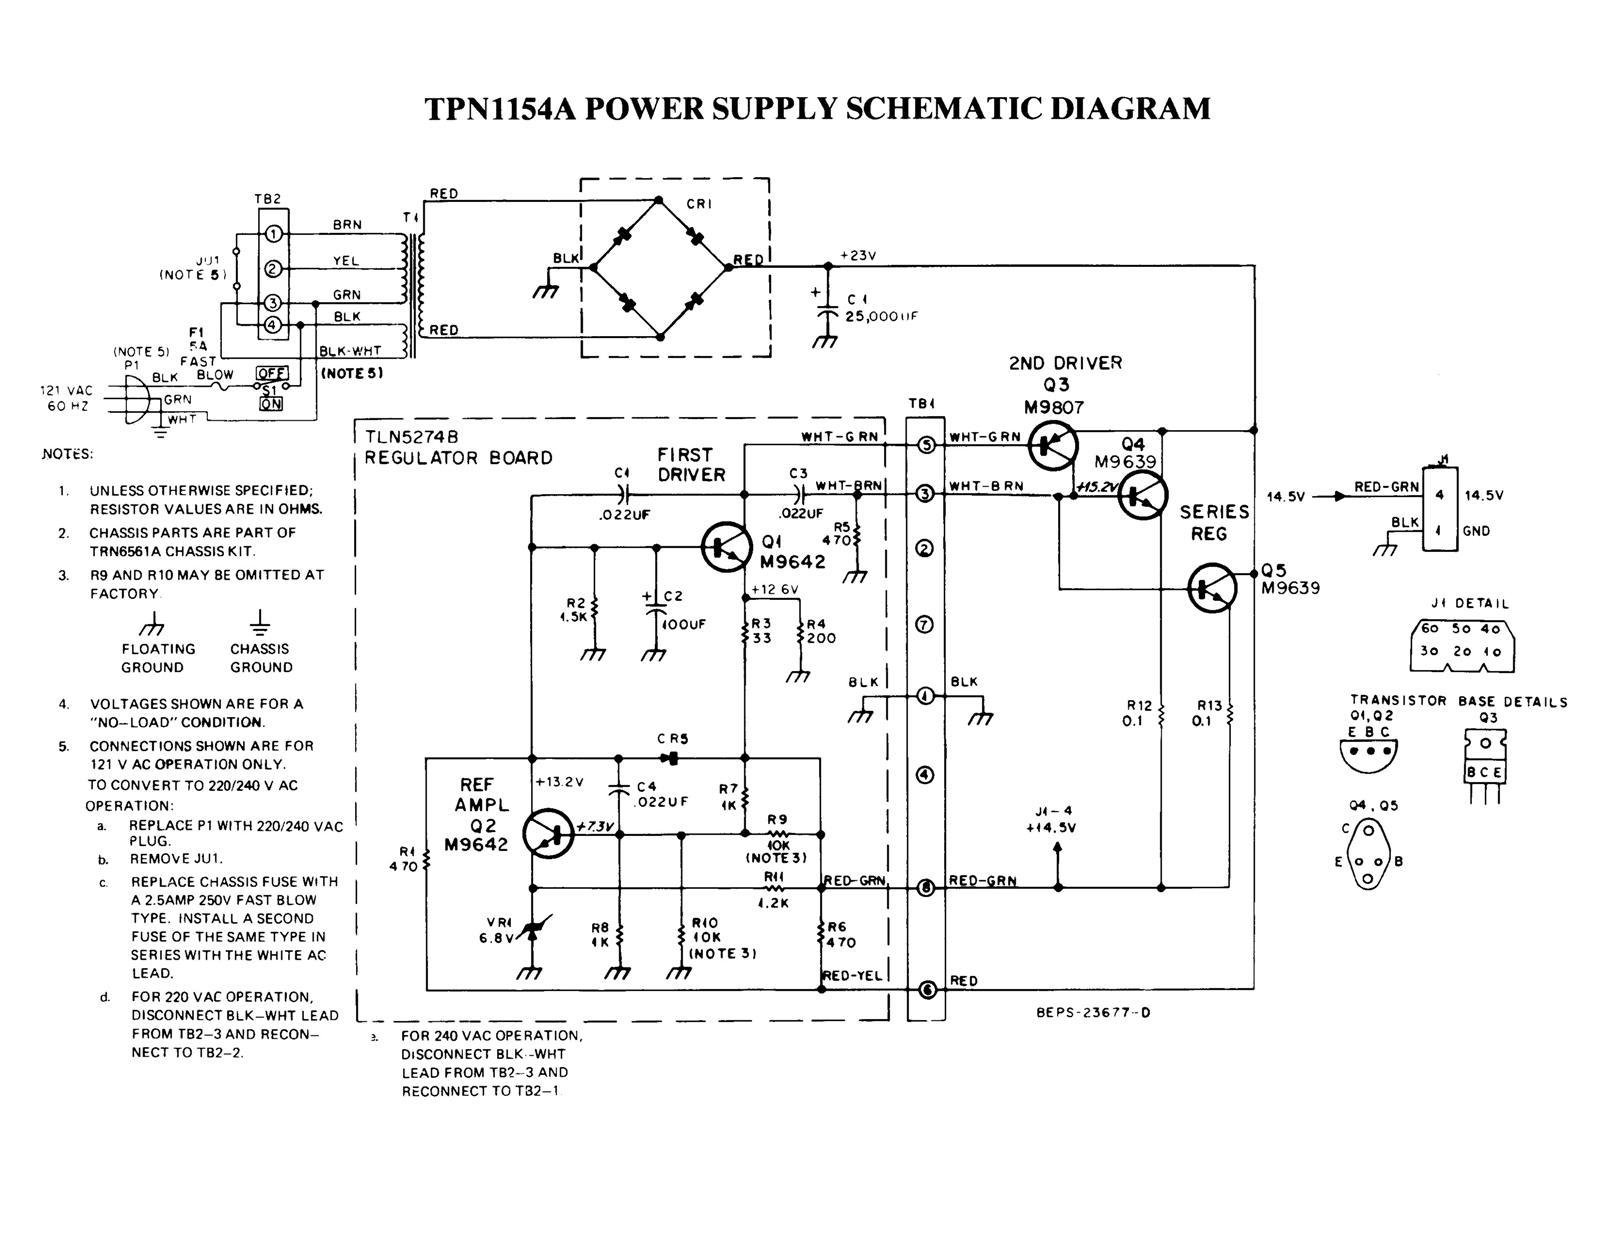 Improving The Motorola Tpn1154 And Tpn1136 Desktop Power Supplies 12vdc Regulated Supply With Schematic Diagram Share Heres A Photo Showing Terminal Strip Original Regulator Circuit Board Terminals Are Numbered Sequentially From 1 To 8 Starting At